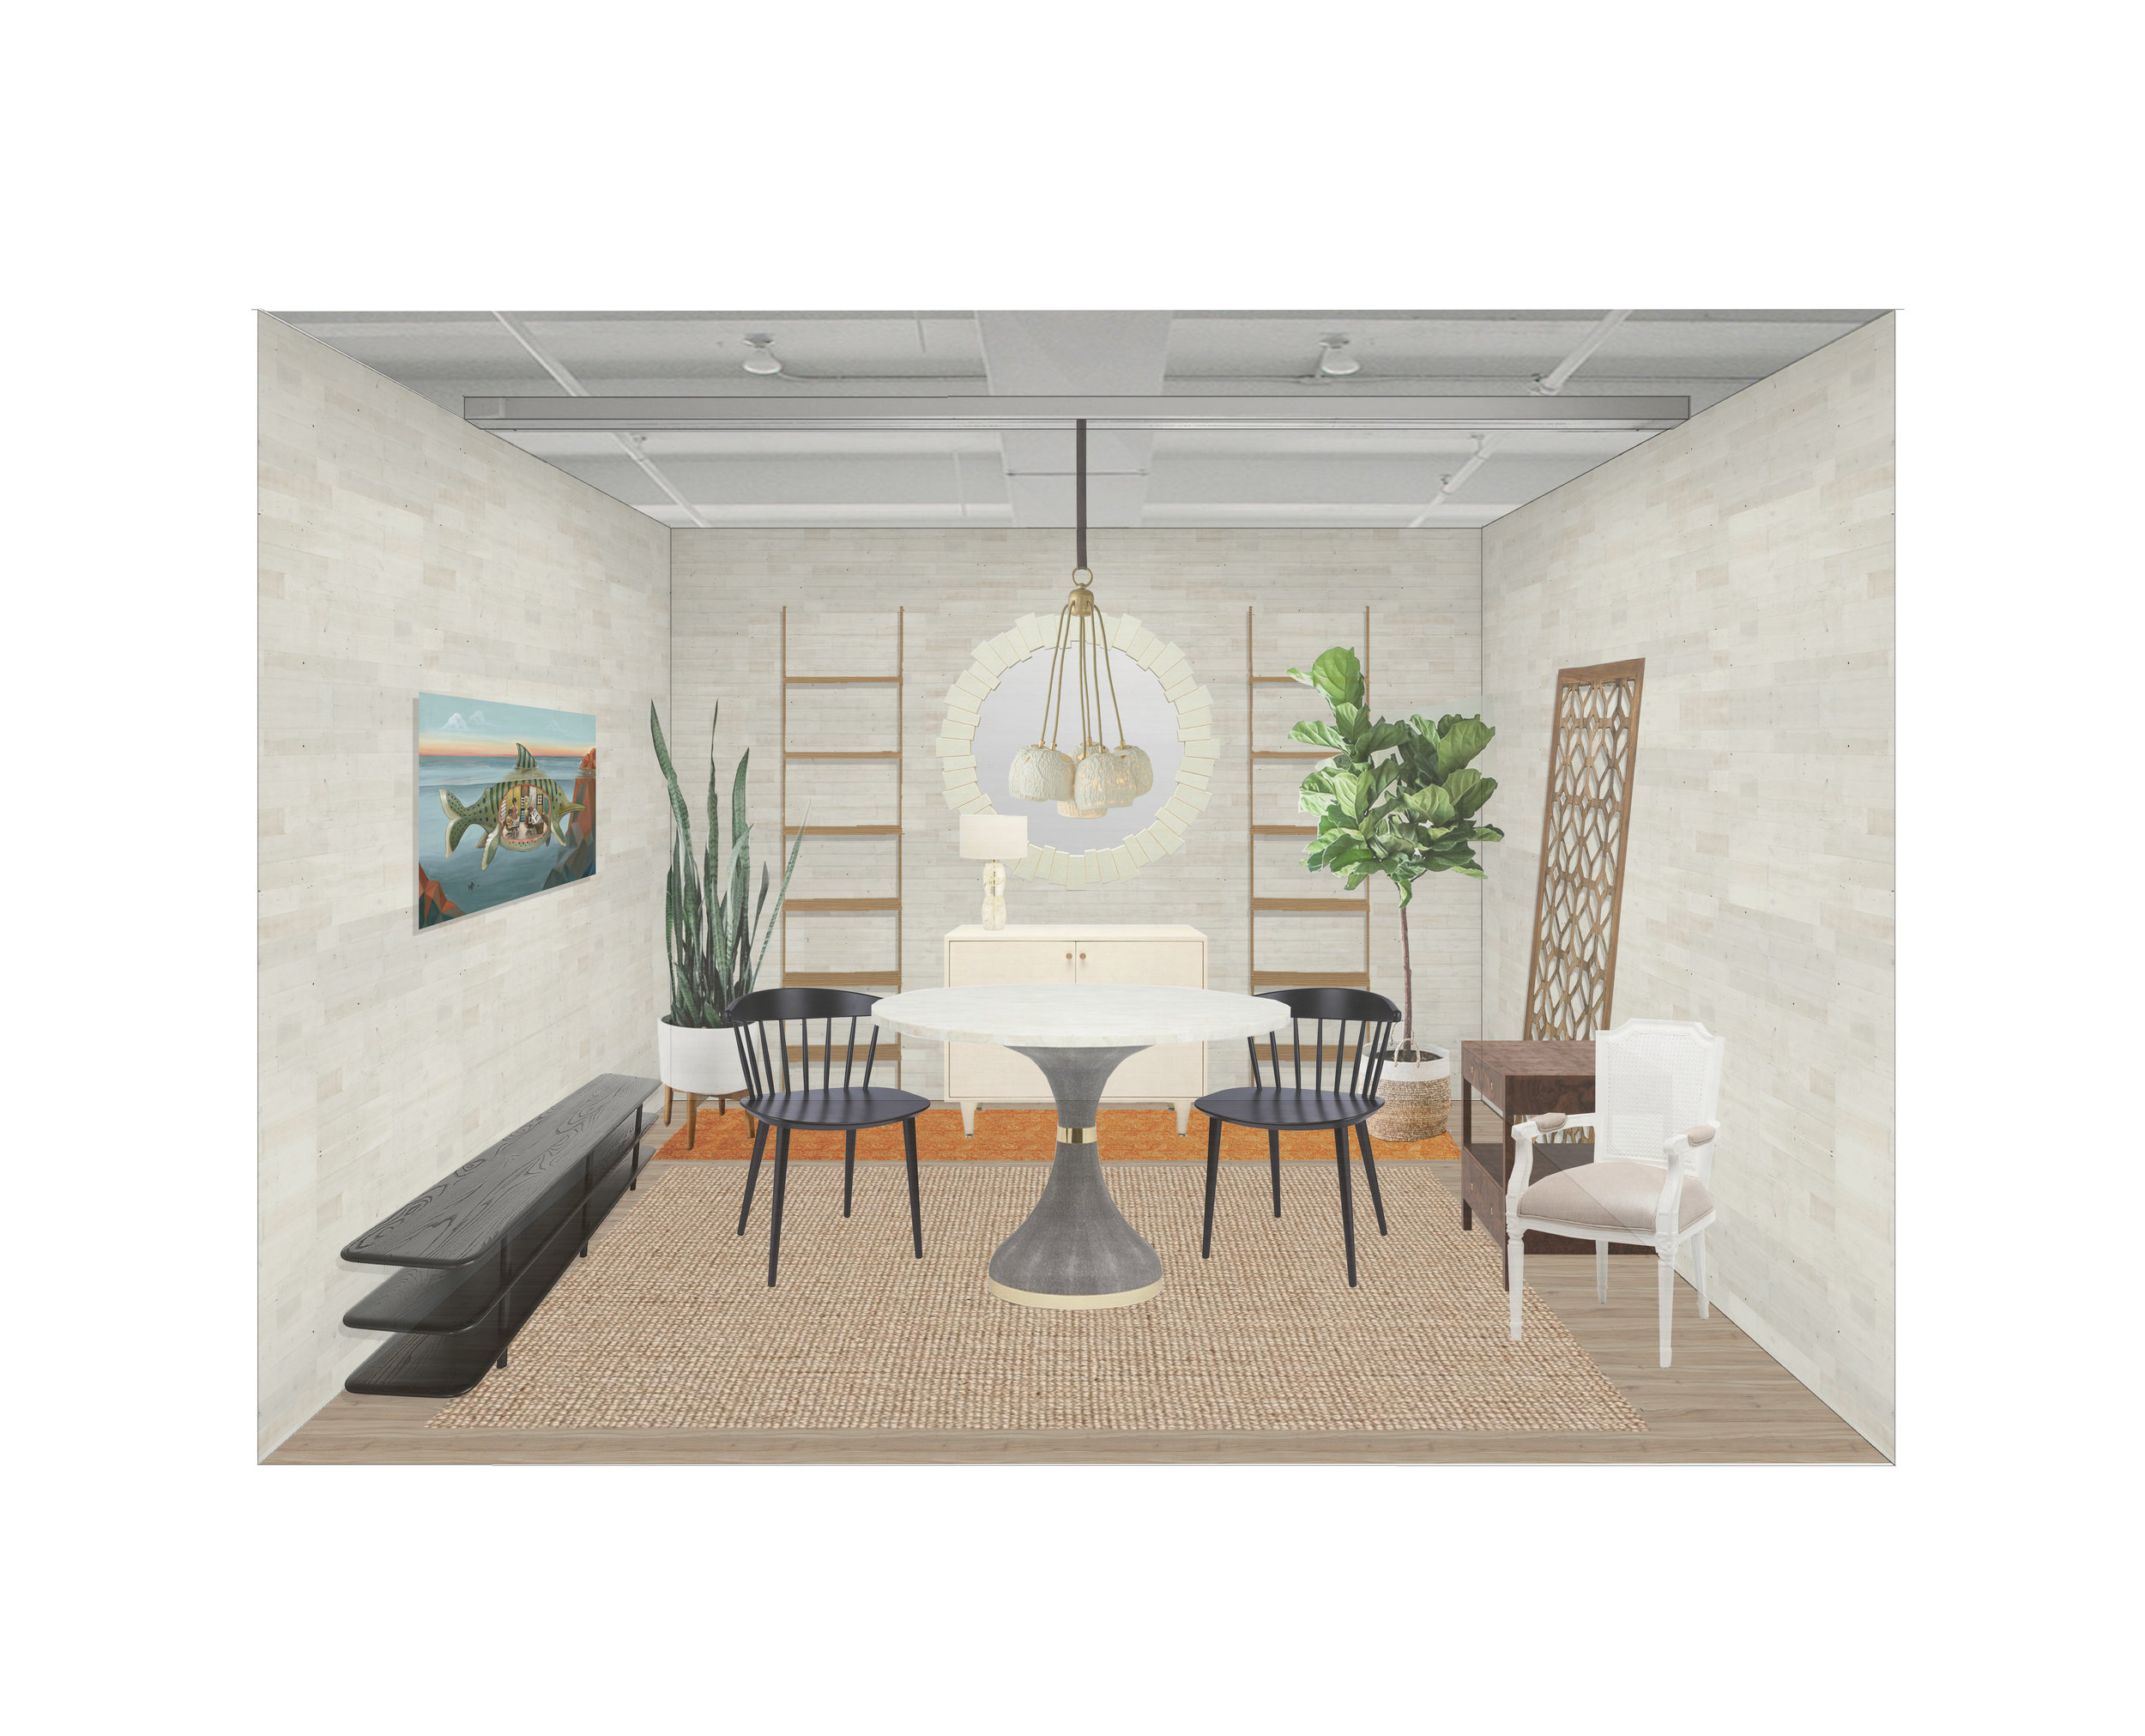 Early Rendering of the Lorla Studio Design on a Dime Room, 2018